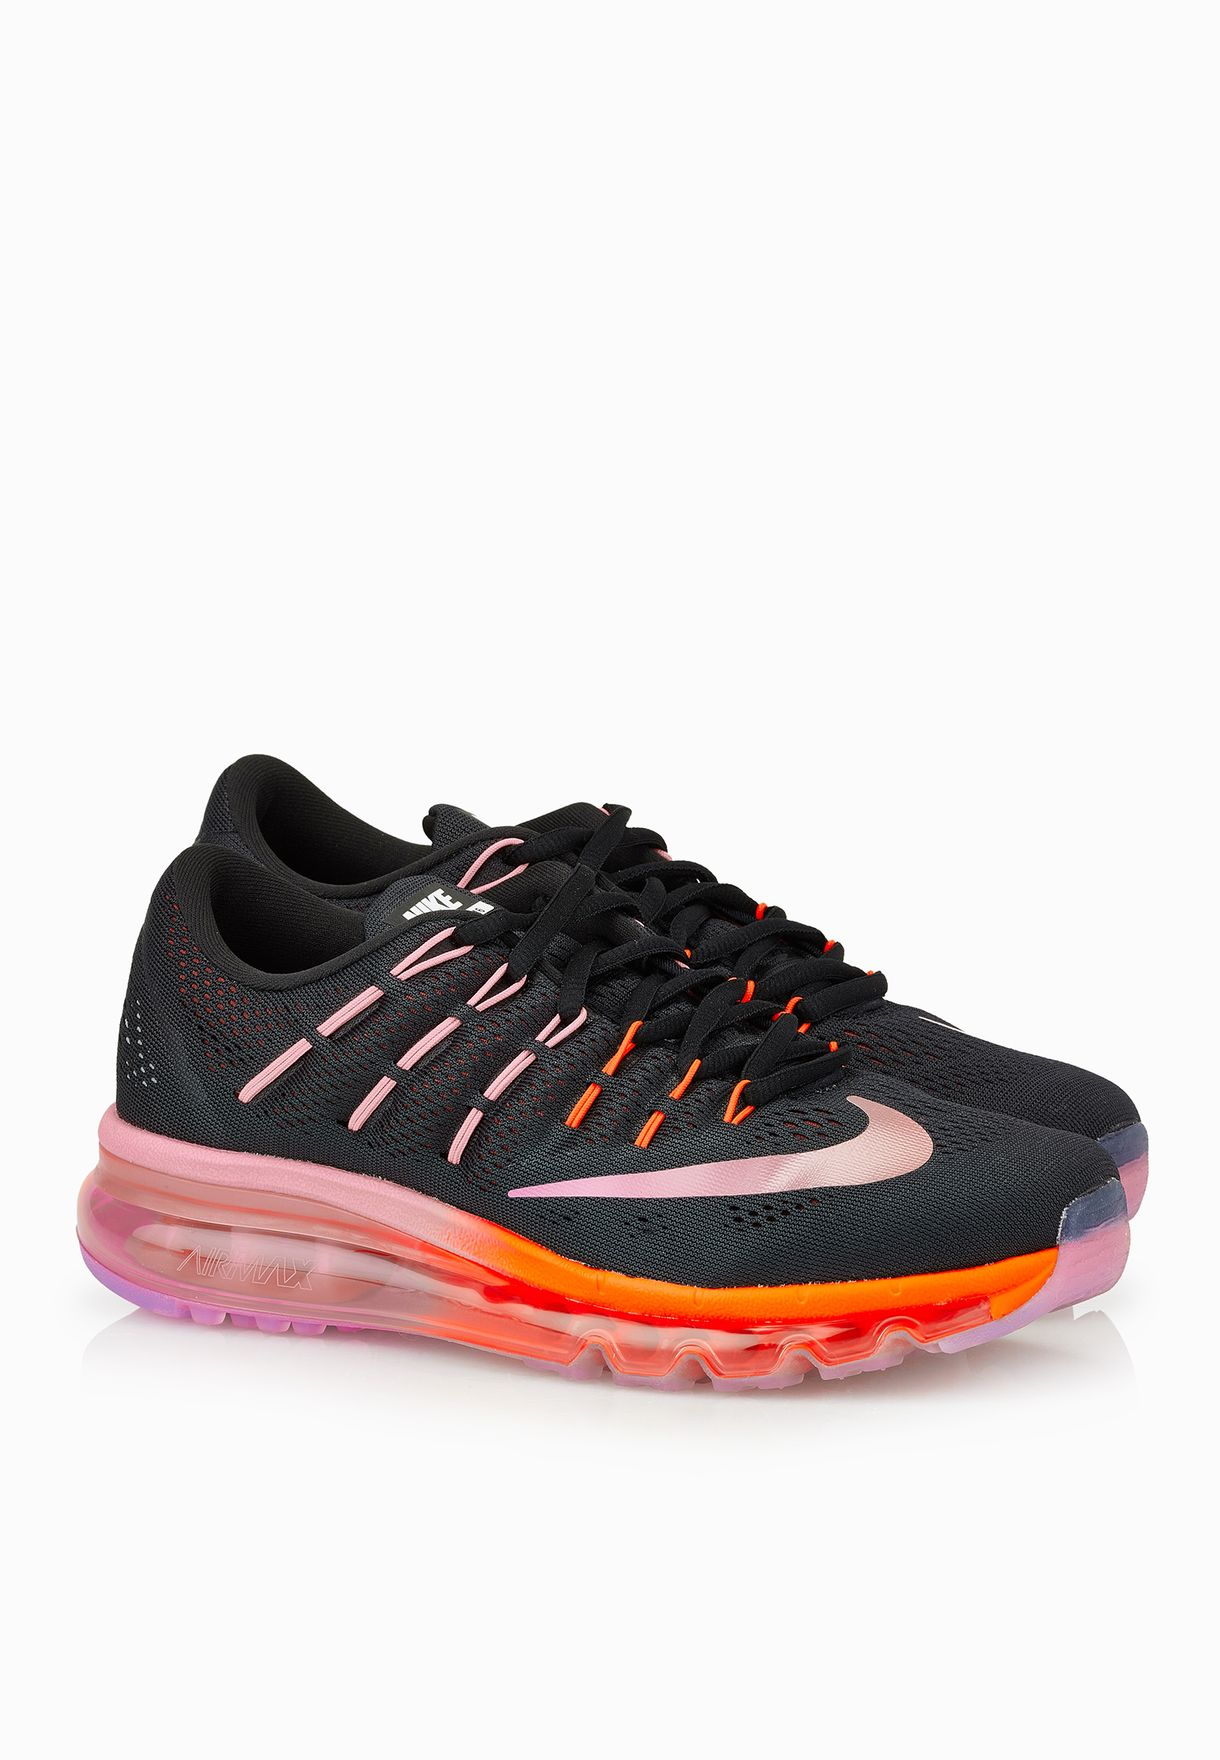 cheap for discount a8033 2e05a Nike. Air Max 2016. 1049 AED 595 AED (Incl. VAT). Fast Delivery. Size. 36.5   37.5  38  38.5  39  40  40.5